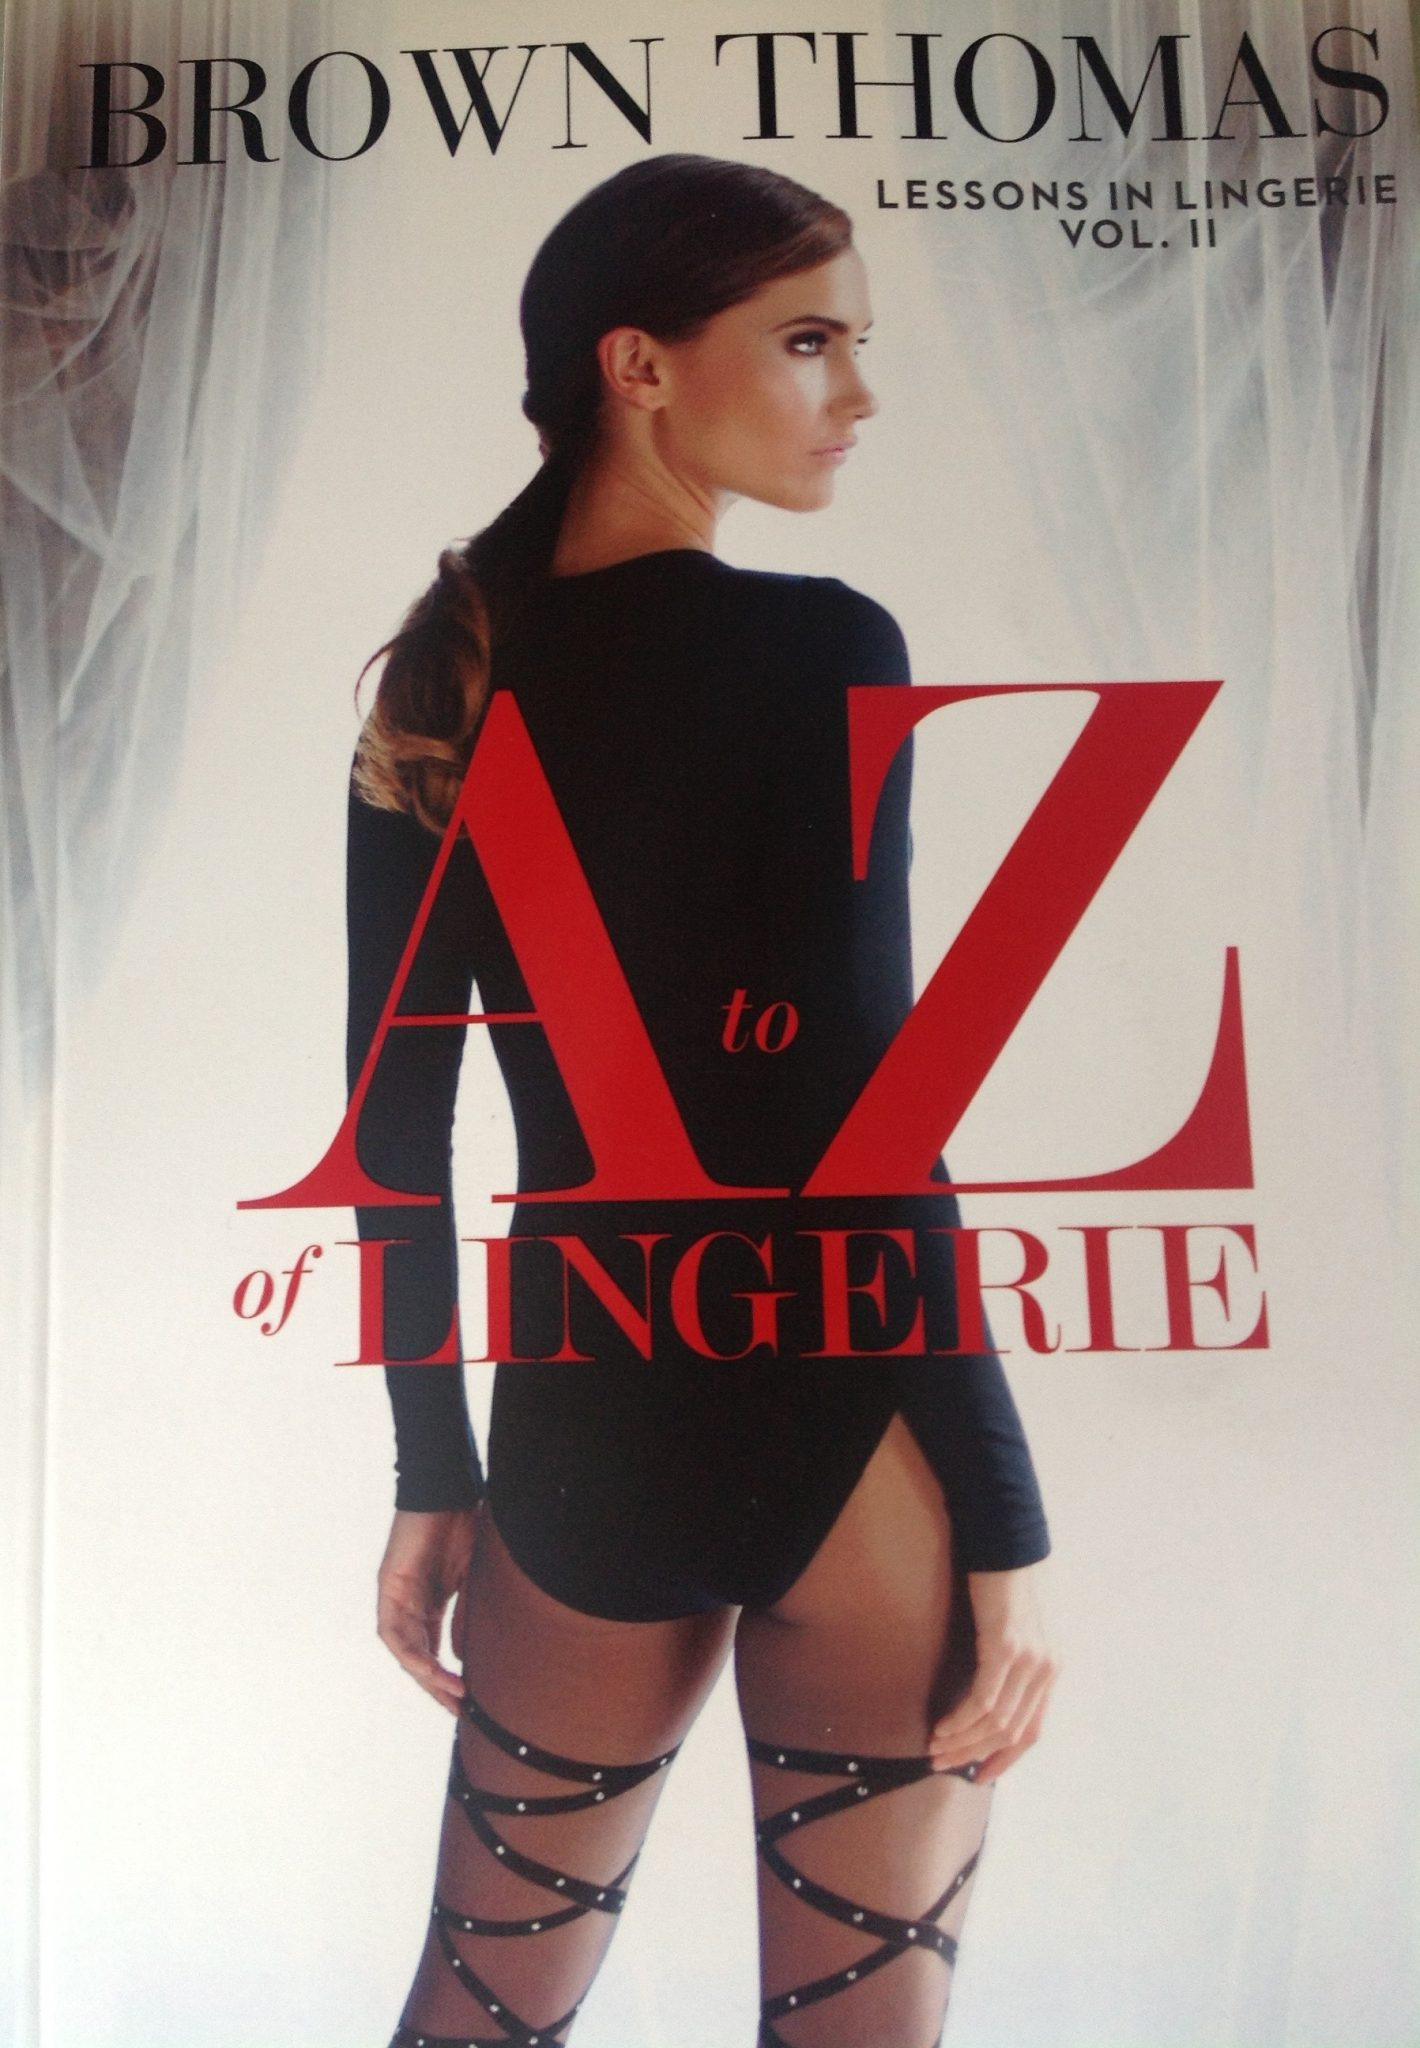 Lesons in Lingerie II: The A-Z of Lingerie